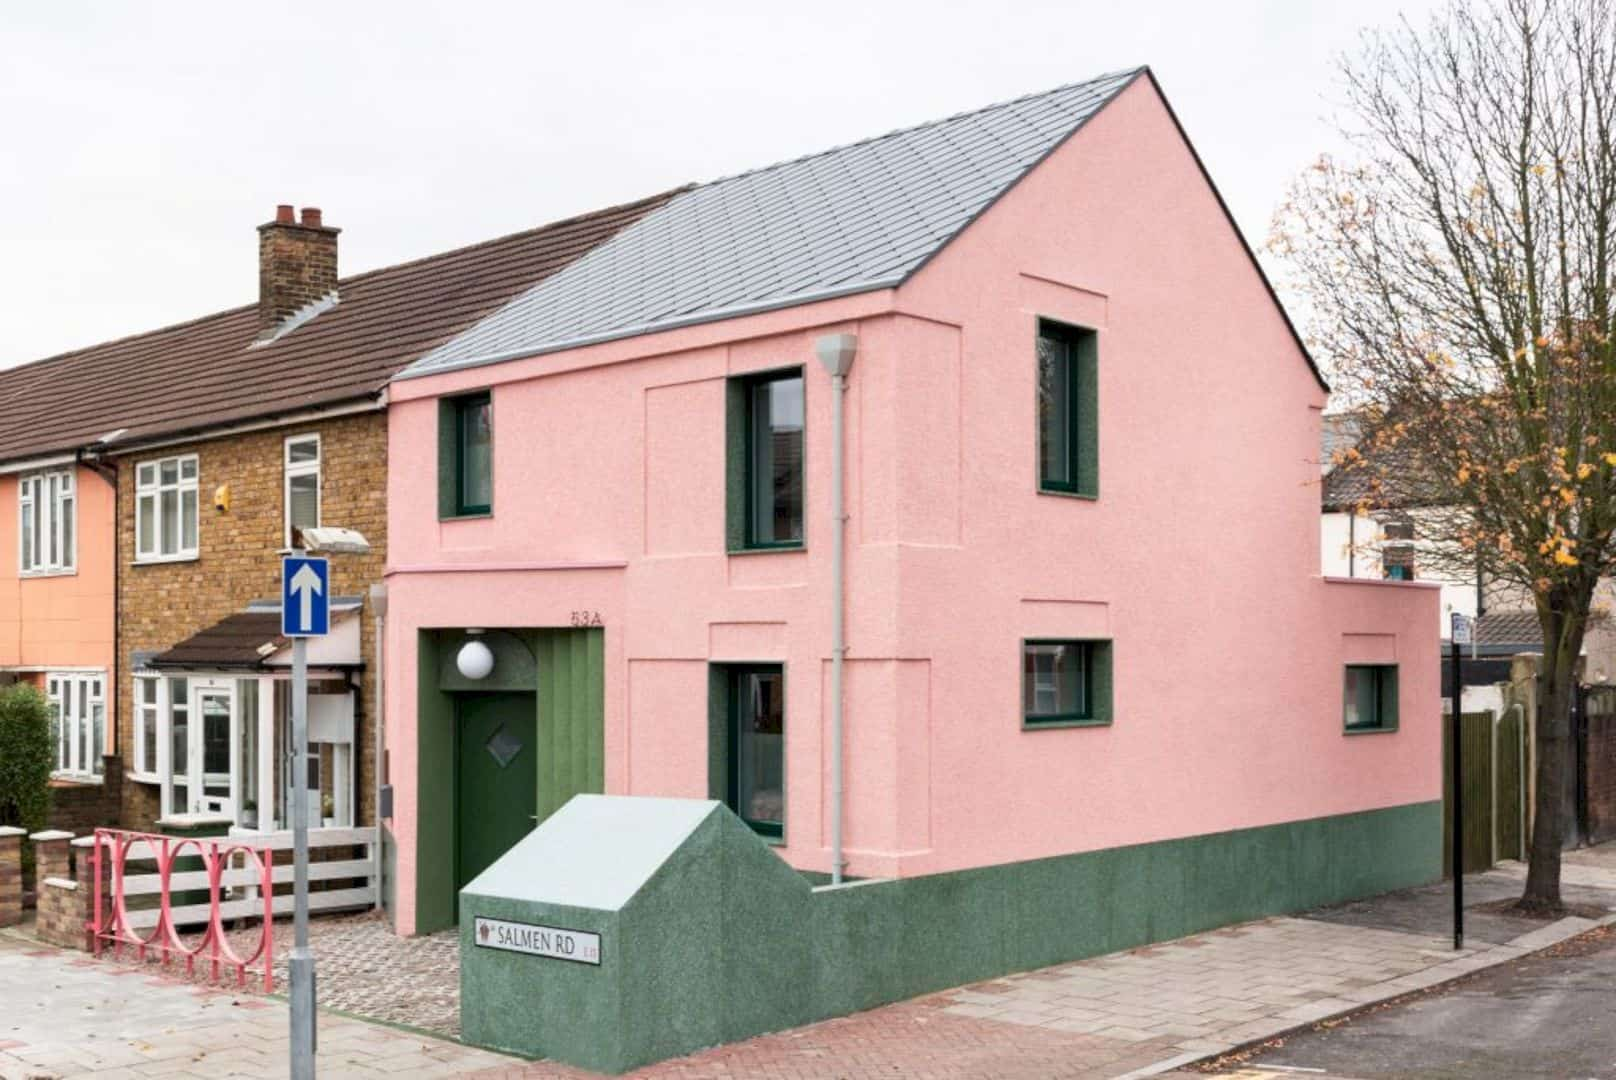 The Salmen House A Distincitve Pink And Green Rental Home In West Ham 7